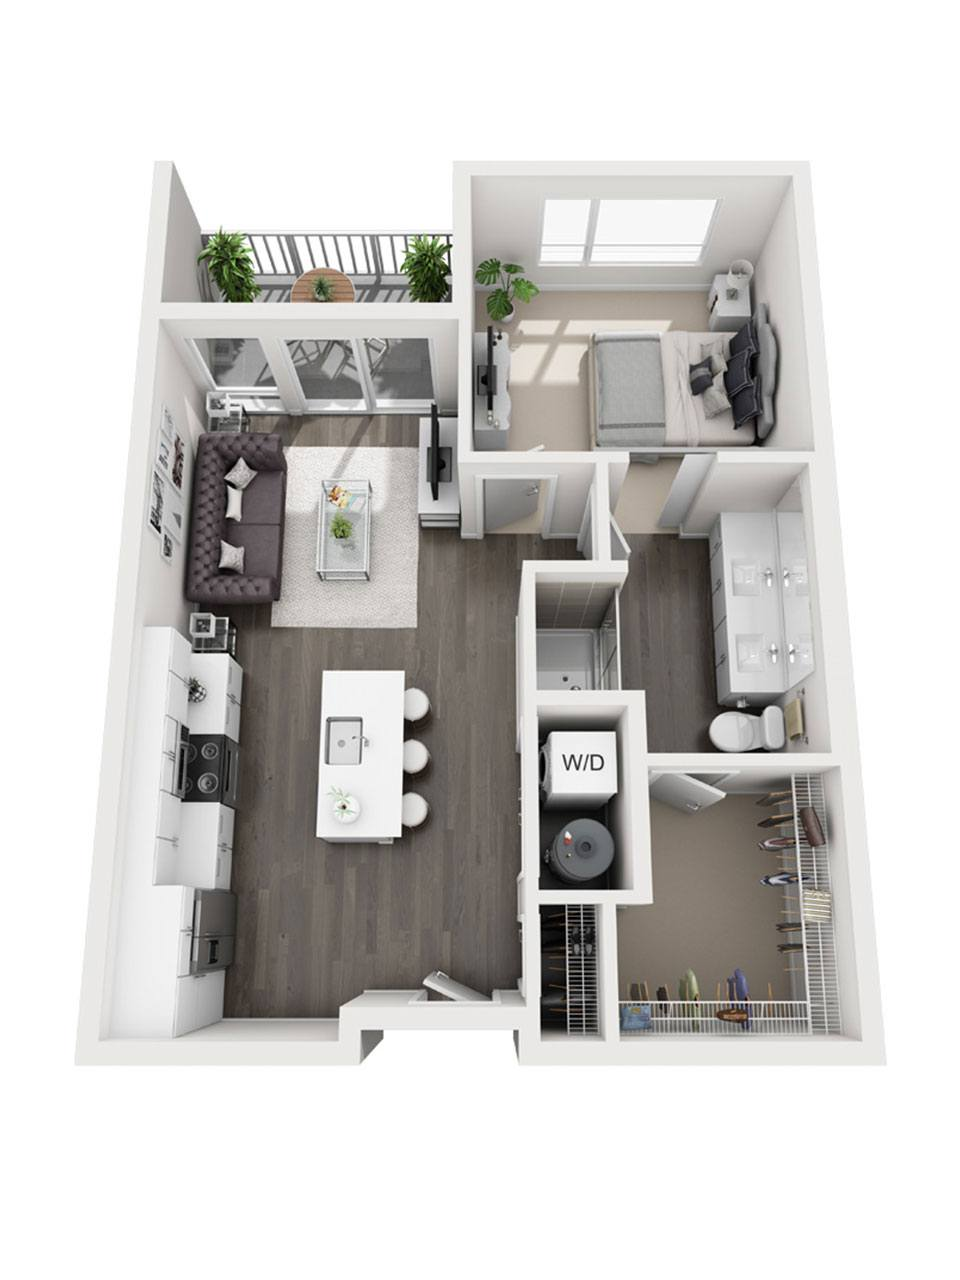 Plan 1 Bedroom – A9 | 1 Bath